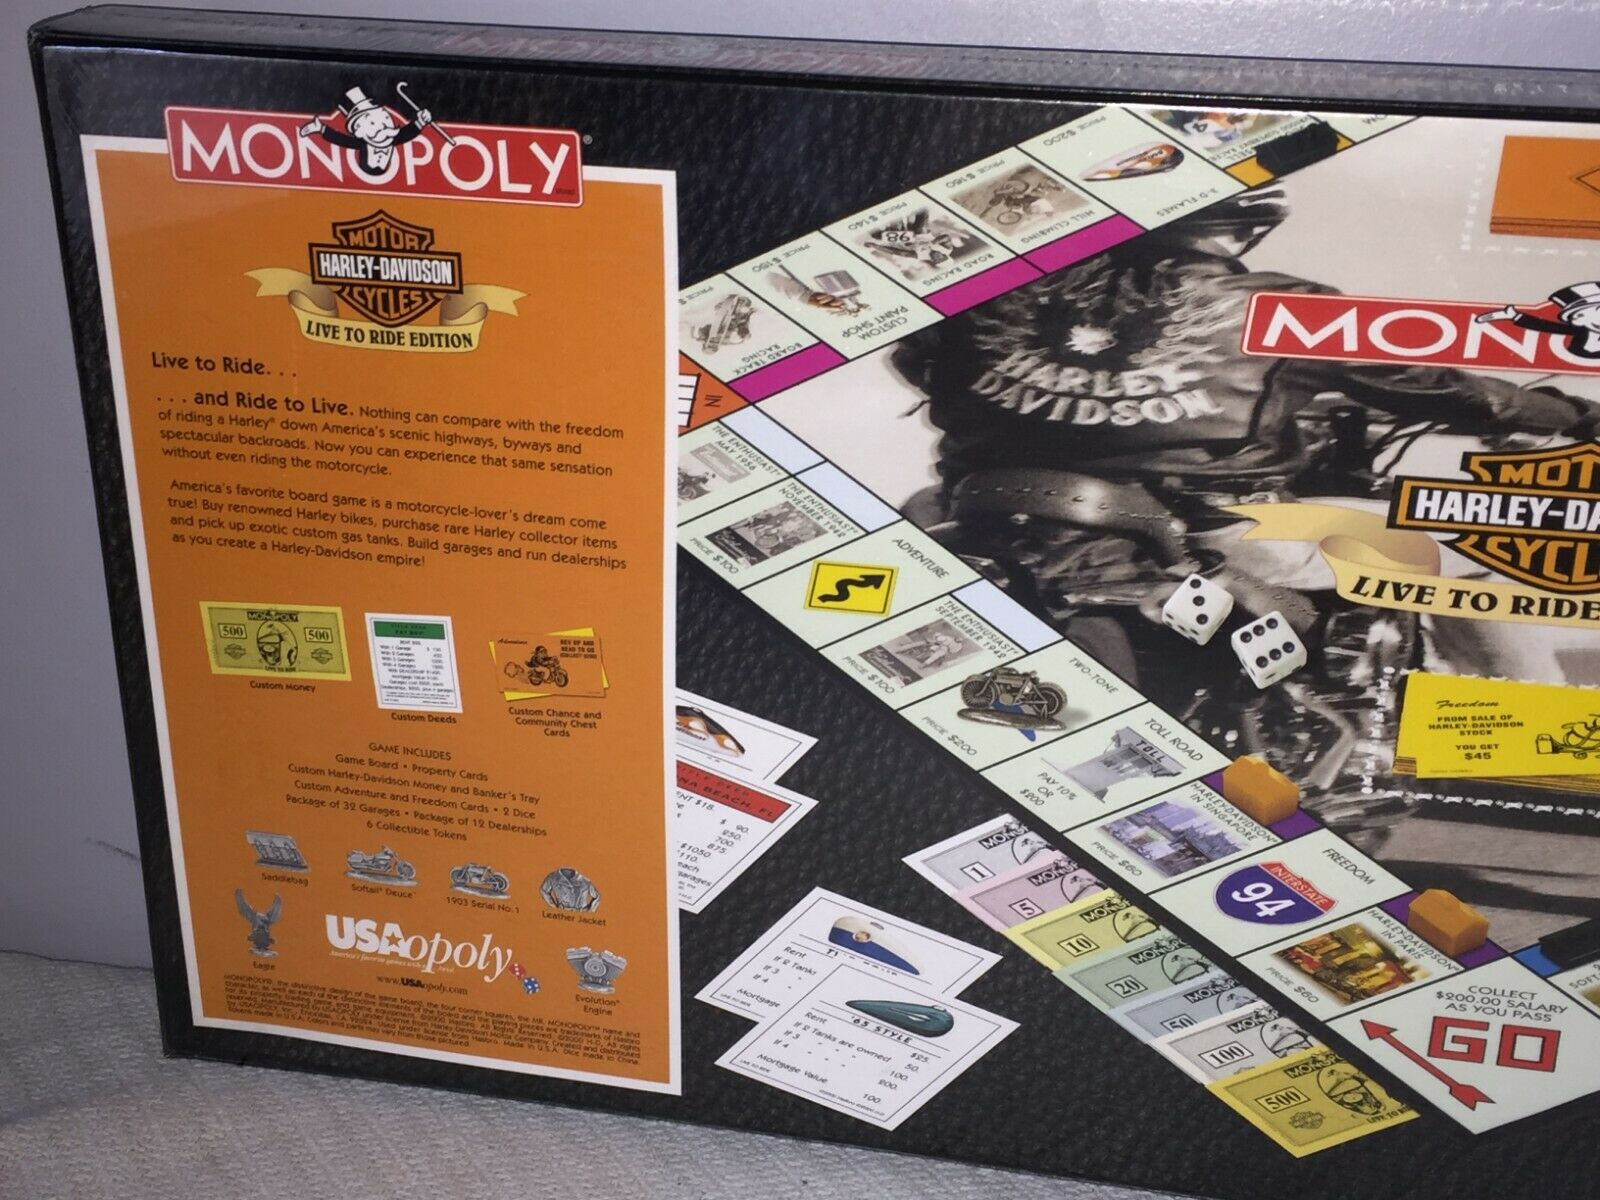 Monopoly Game Harley-Davidson Motorcycle    Live to Ride  Edition by Parker Bros. 3a53e8